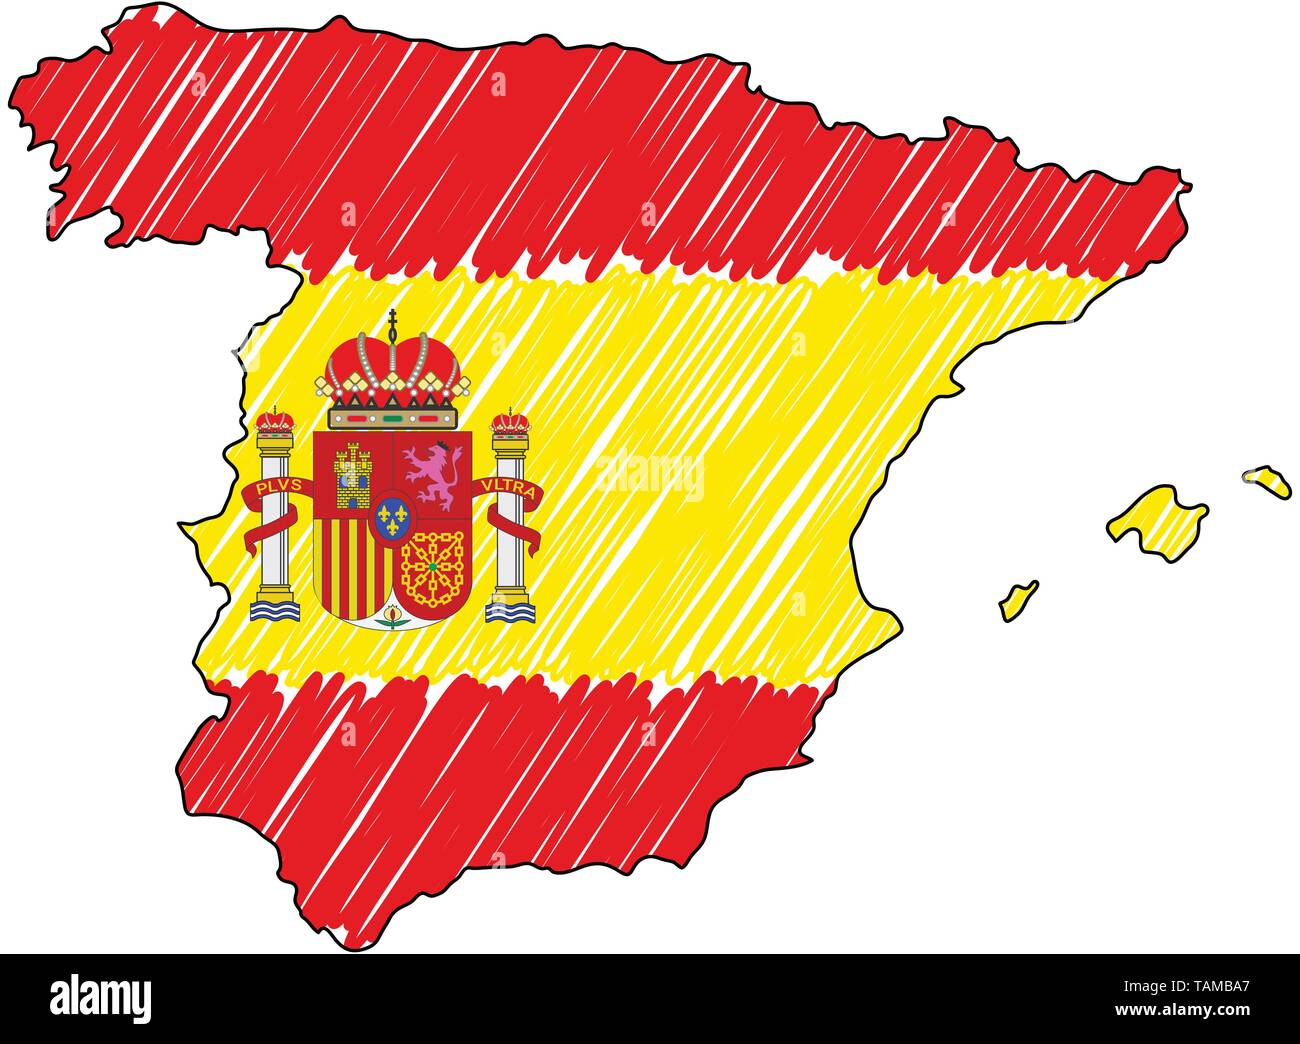 Map Of Spain Drawing.Spain Map Hand Drawn Sketch Vector Concept Illustration Flag